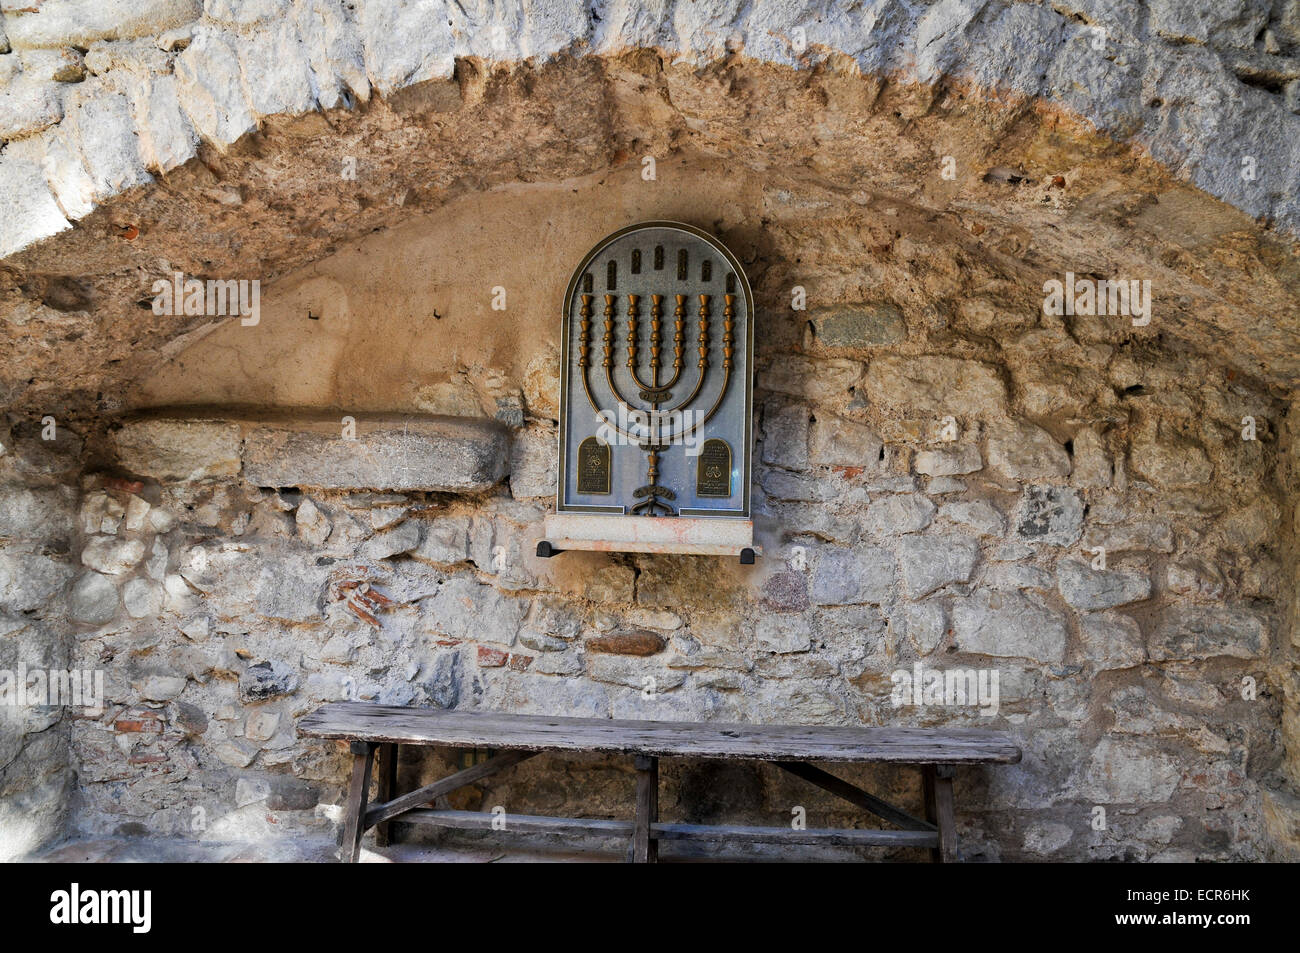 Girona, the Catalan Jewish Museum, Catalonia, Spain - Stock Image